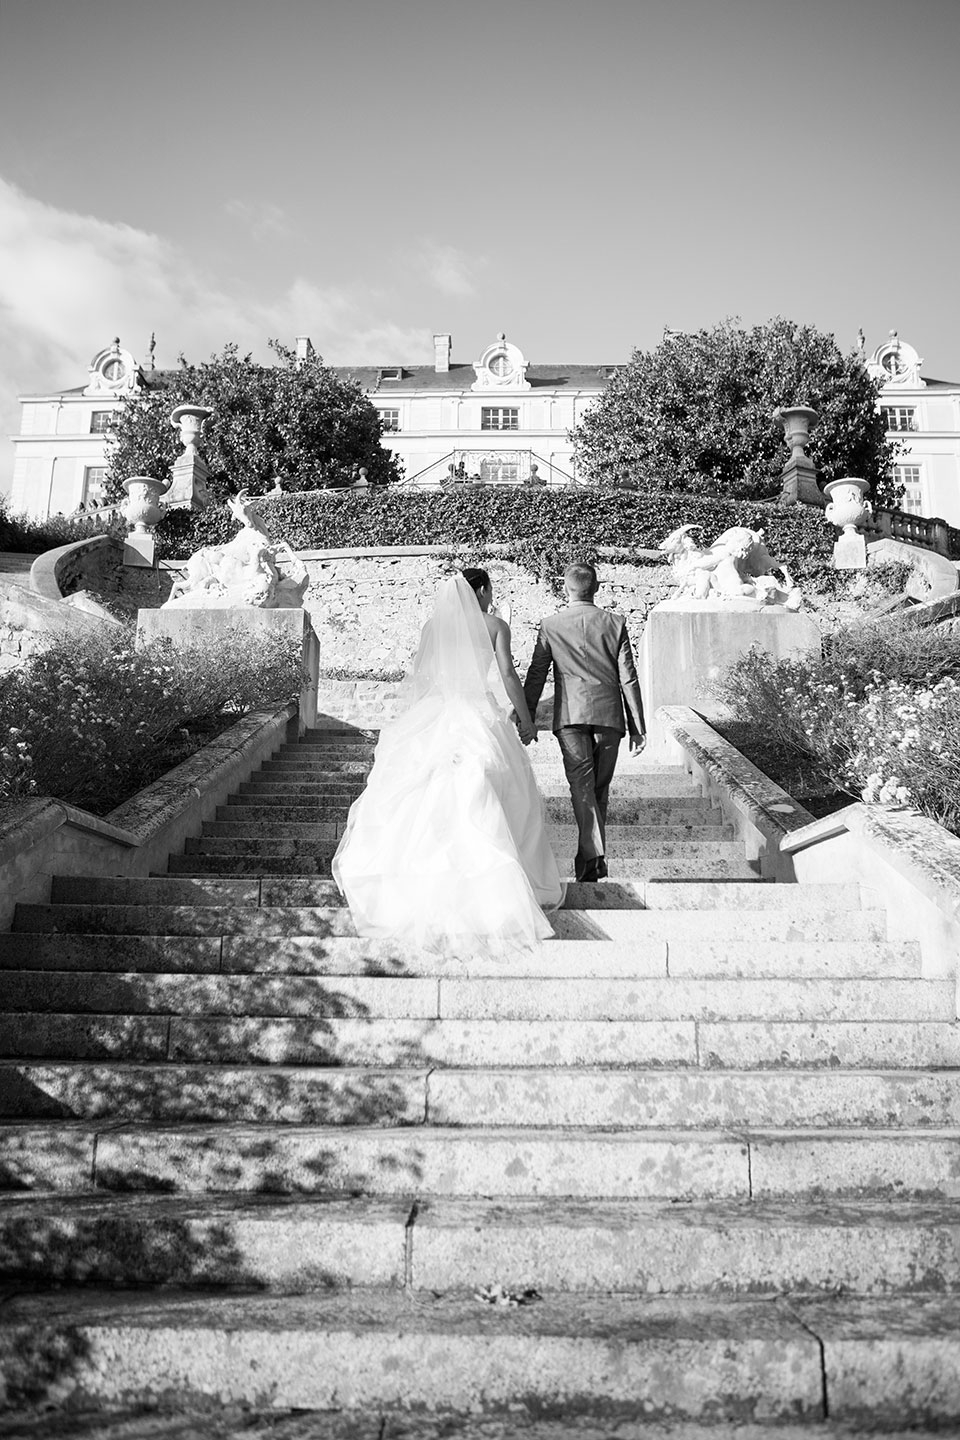 particuliers-mariage-oui-delphineguillaume-46